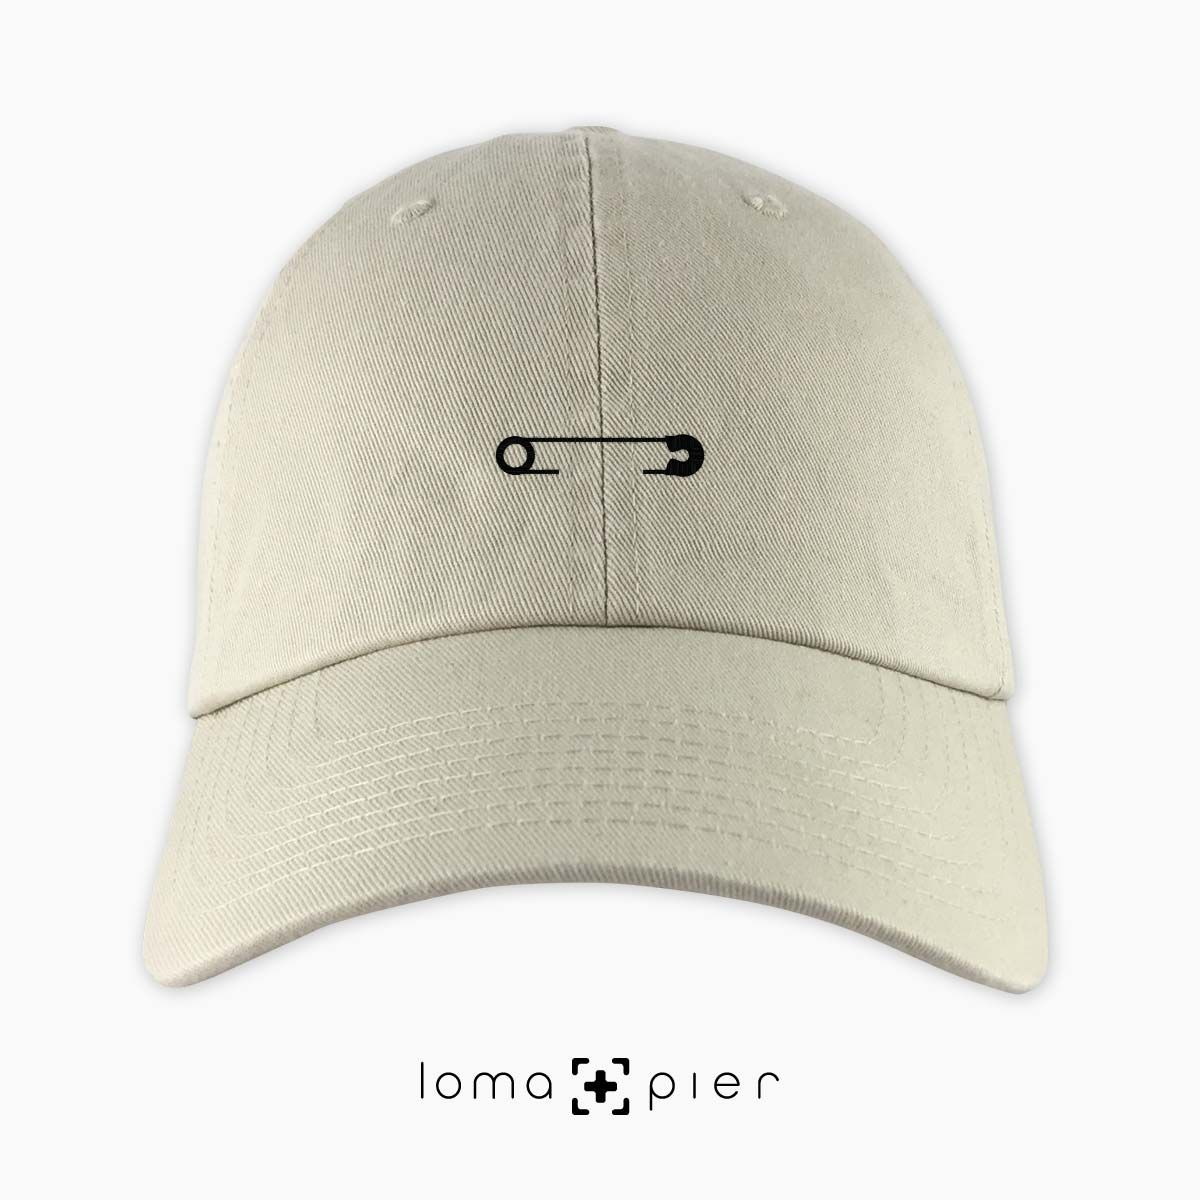 Safety Pin Icon Embroidered On A Khaki Unstructured Dad Hat With Black  Thread By Loma+